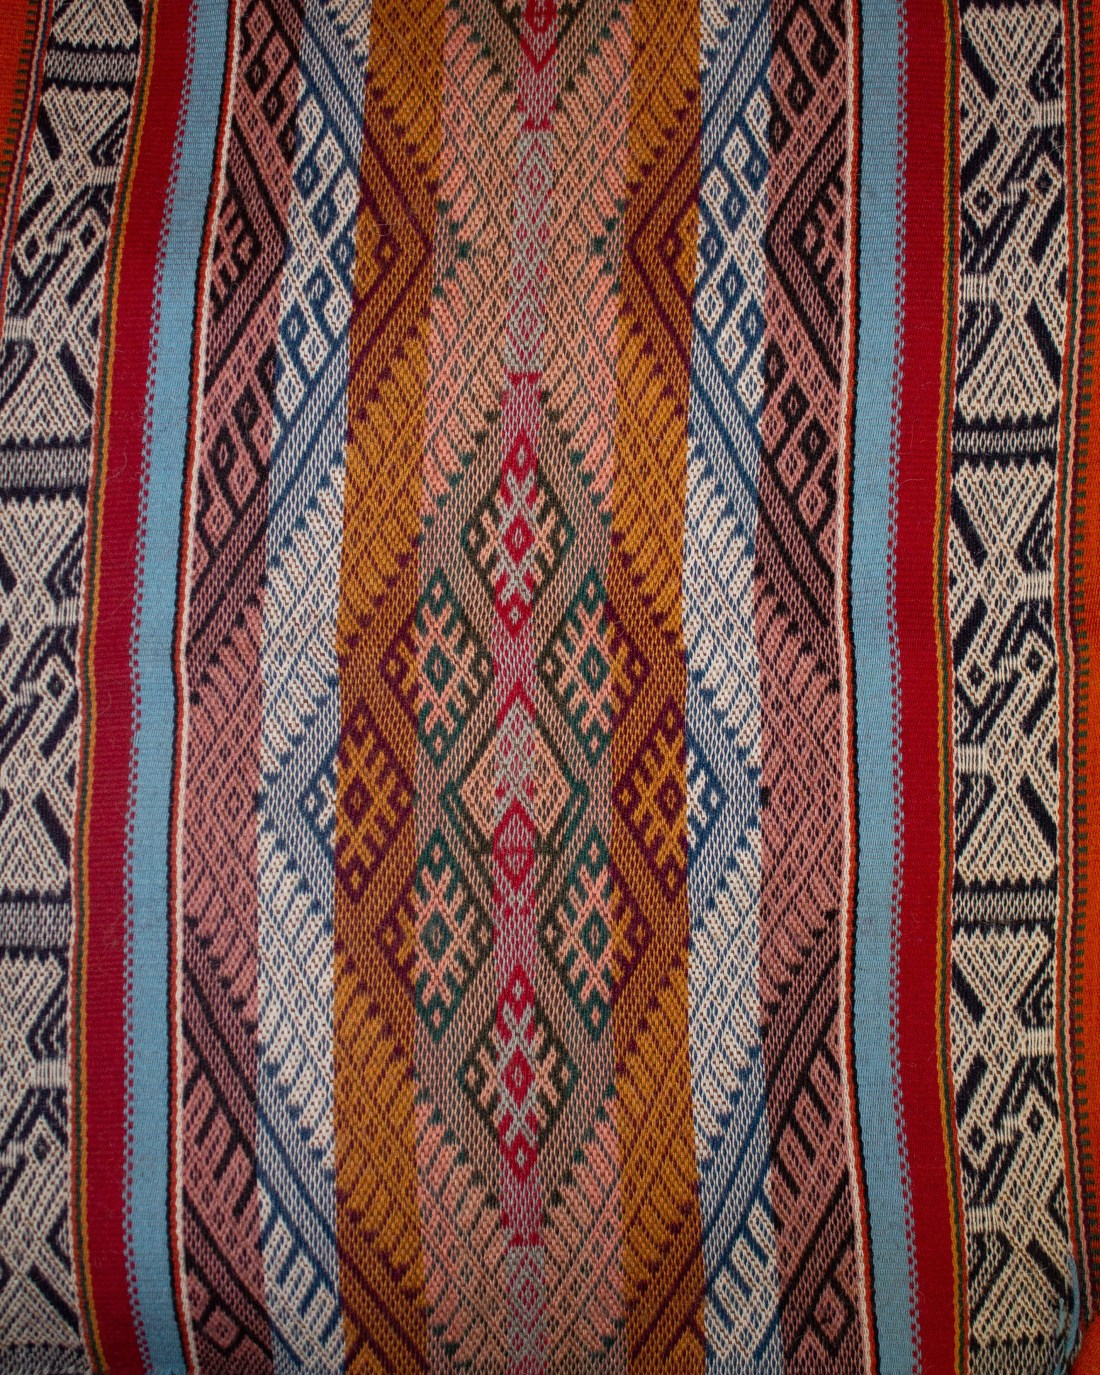 Cultural heritage and textiles in Chinchero Cusco 04